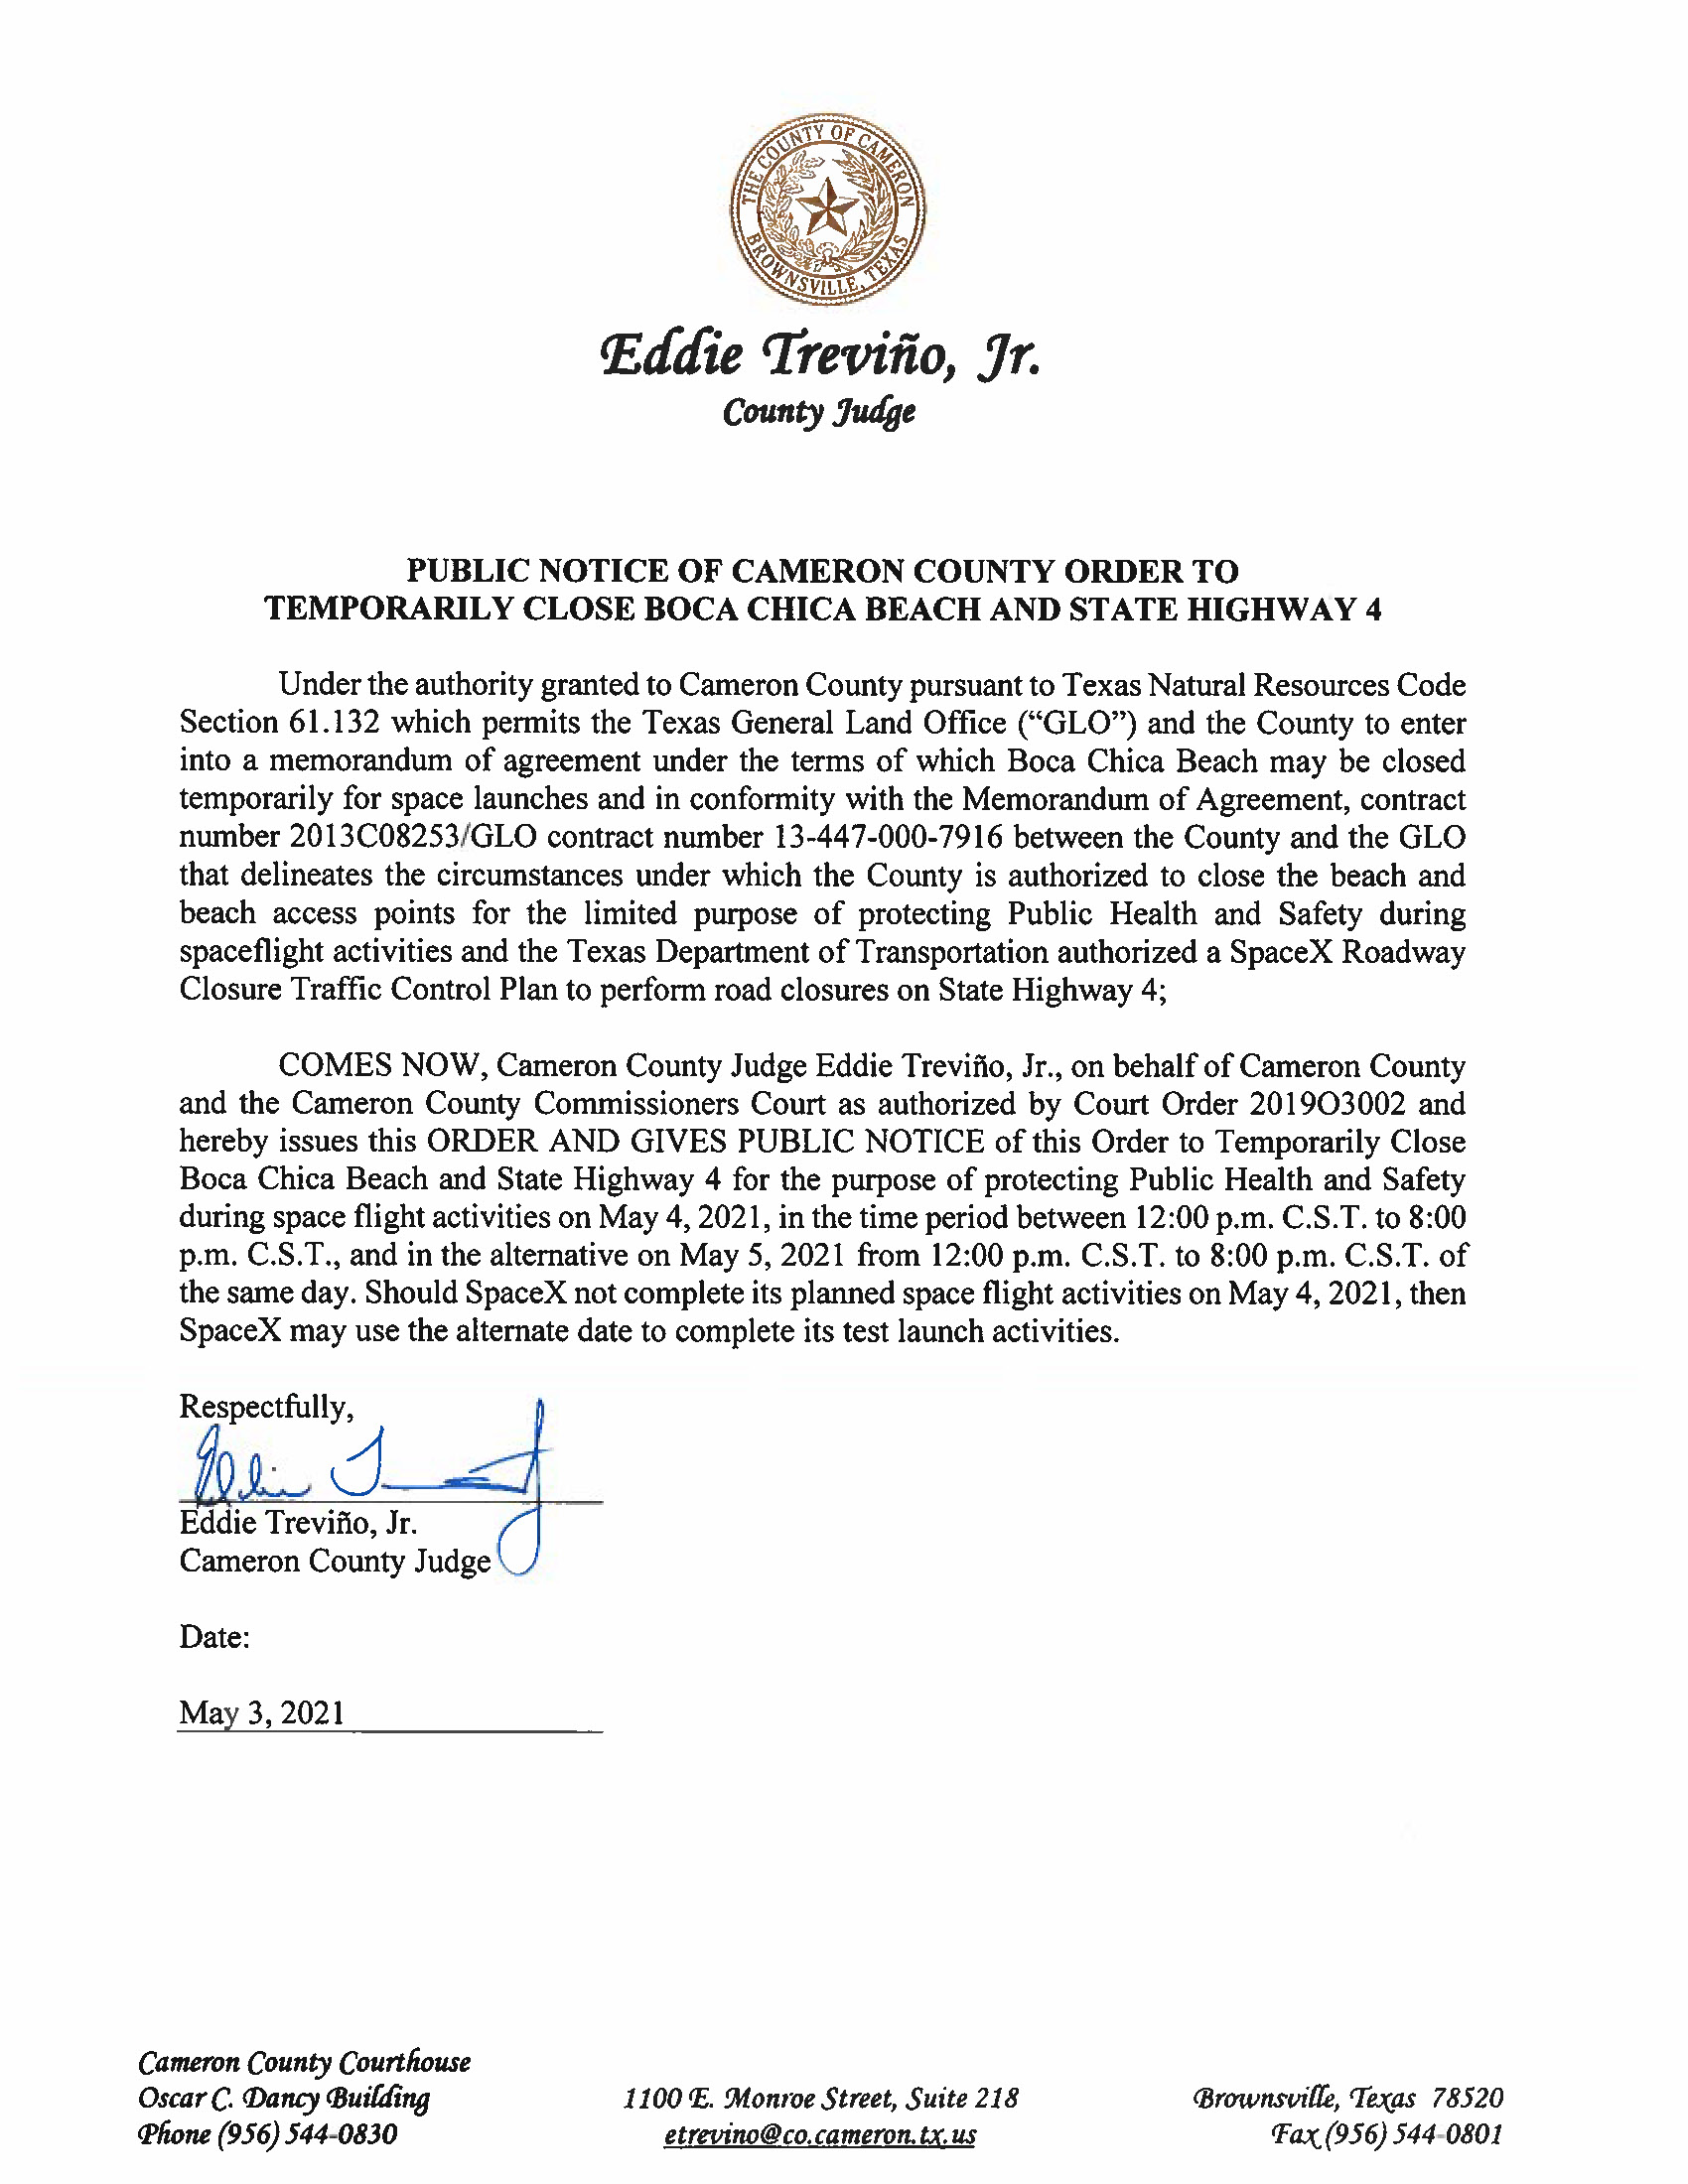 PUBLIC NOTICE OF CAMERON COUNTY ORDER TO TEMP. BEACH CLOSURE AND HWY.05.04.2021